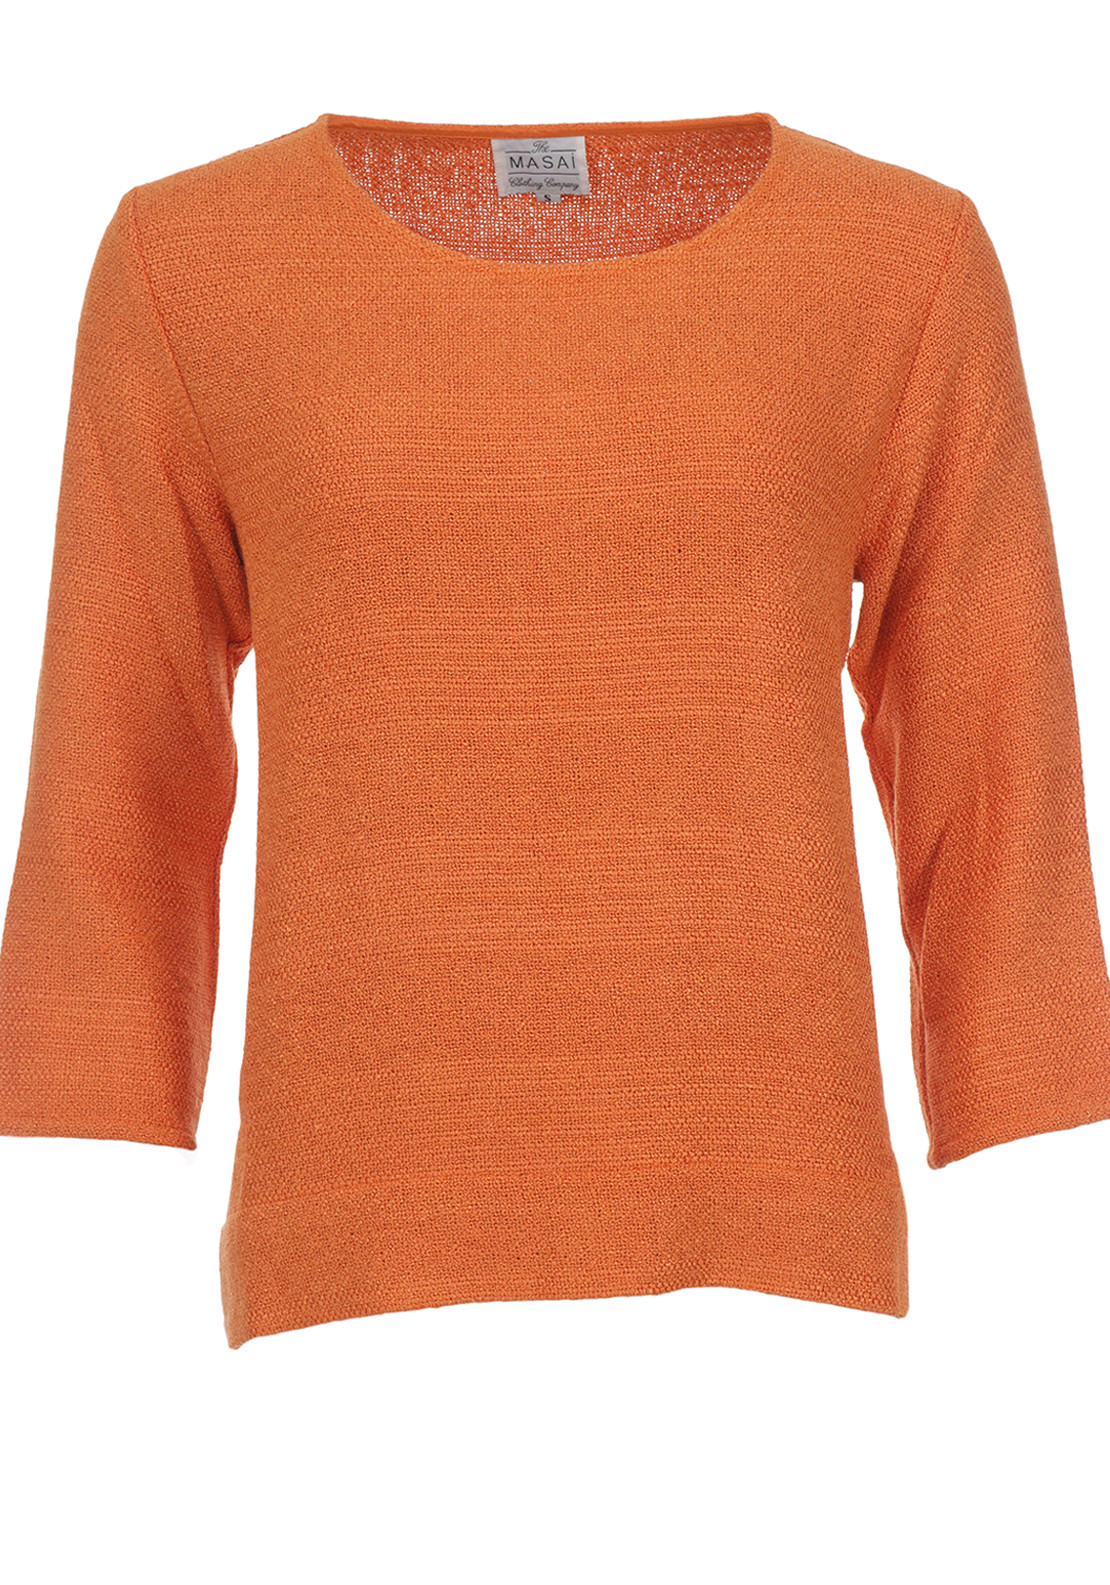 The Masai Clothing Company Blomsi Jumper, Orange